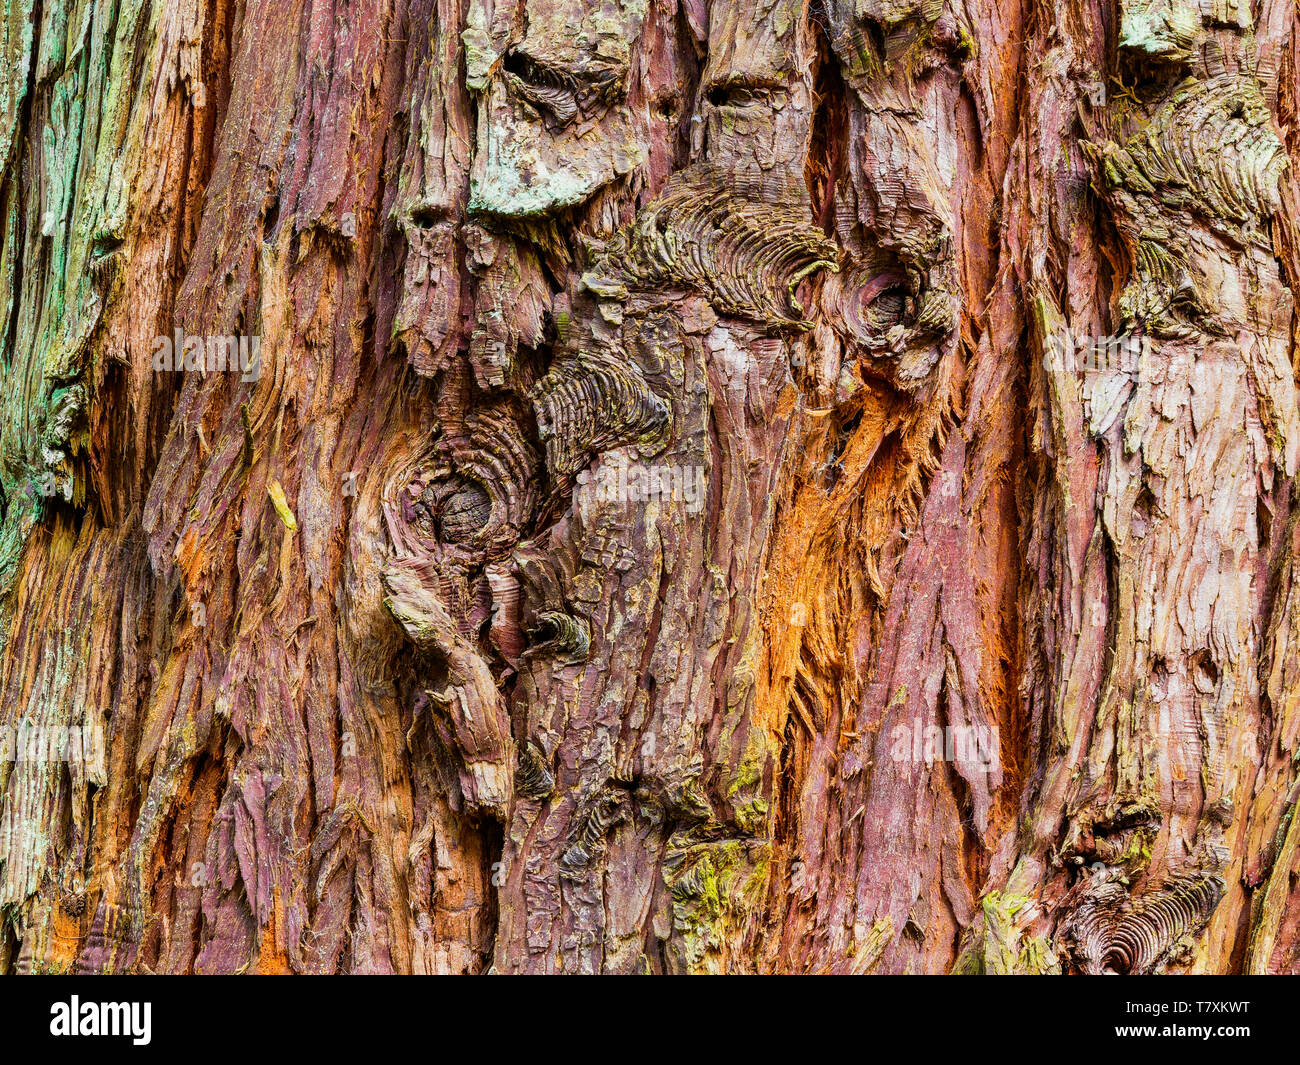 Close up of a piece of colourful peeling Douglas Fir bark with knots and splits Stock Photo